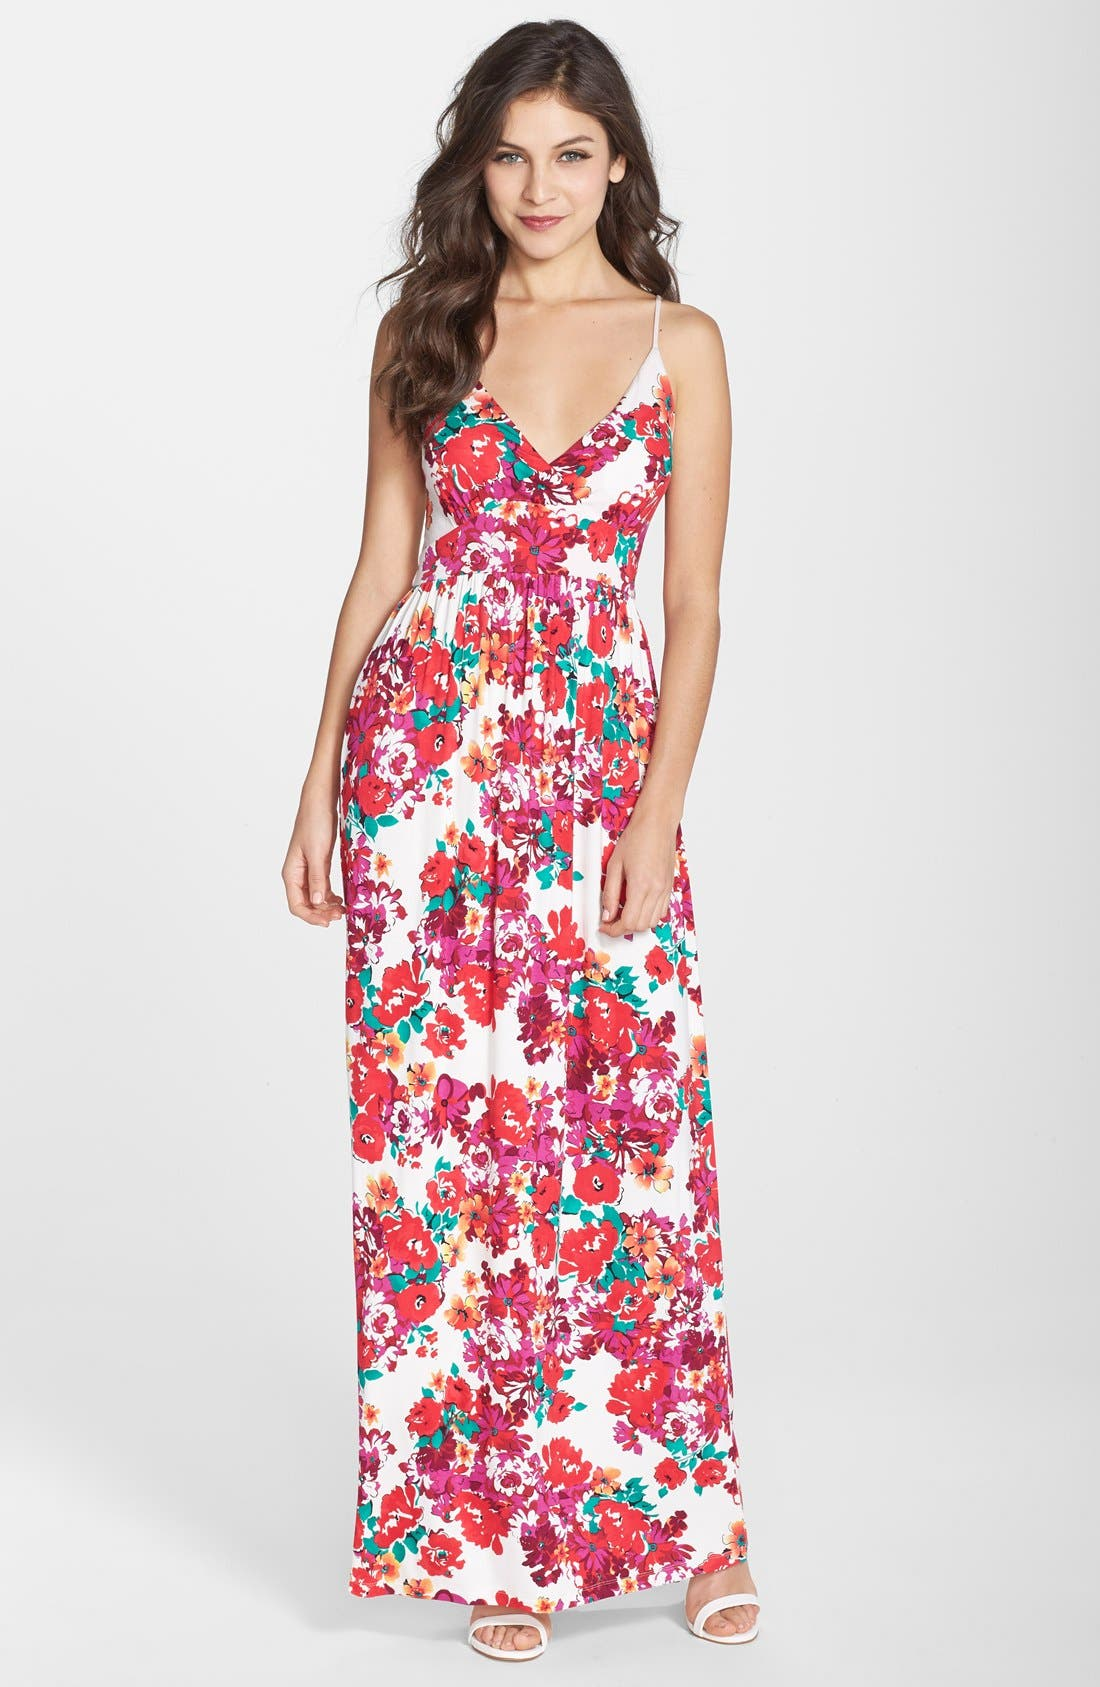 Main Image - Felicity & Coco Floral Print Jersey Maxi Dress (Regular & Petite) (Nordstrom Exclusive)